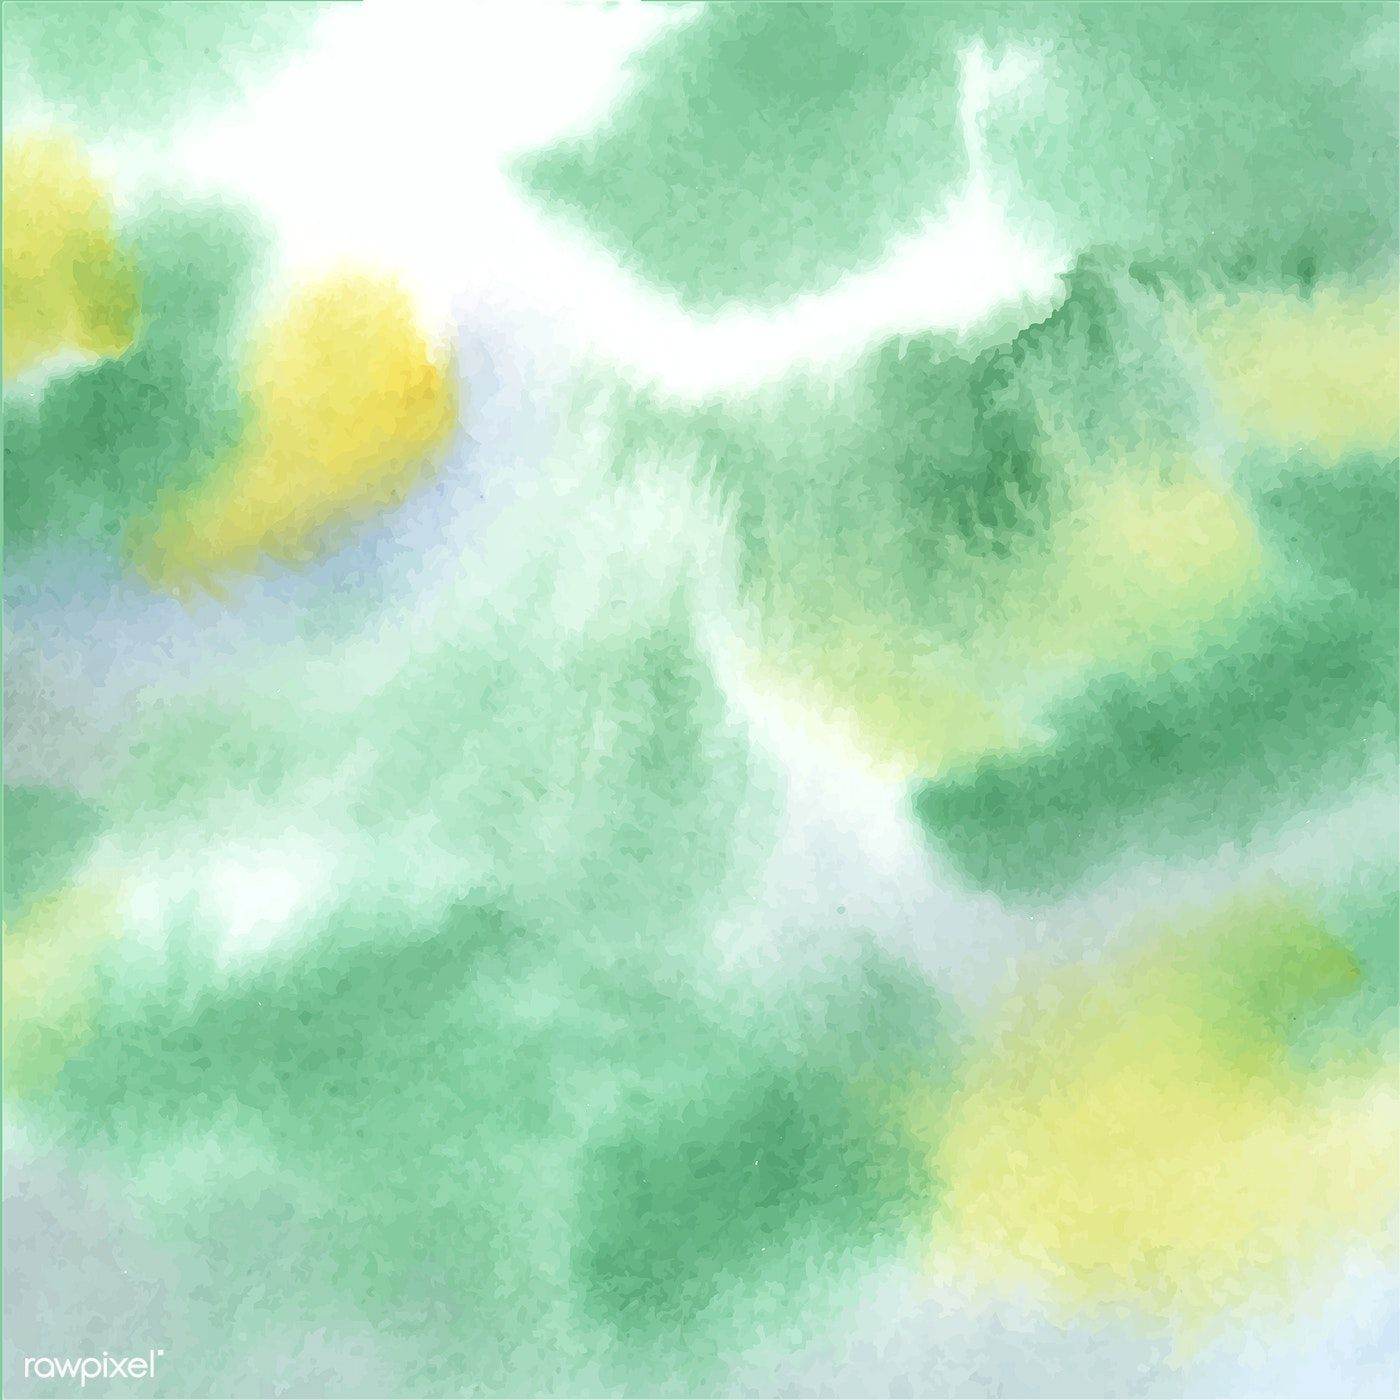 Abstract Green Watercolor Stain Texture Free Image By Rawpixel